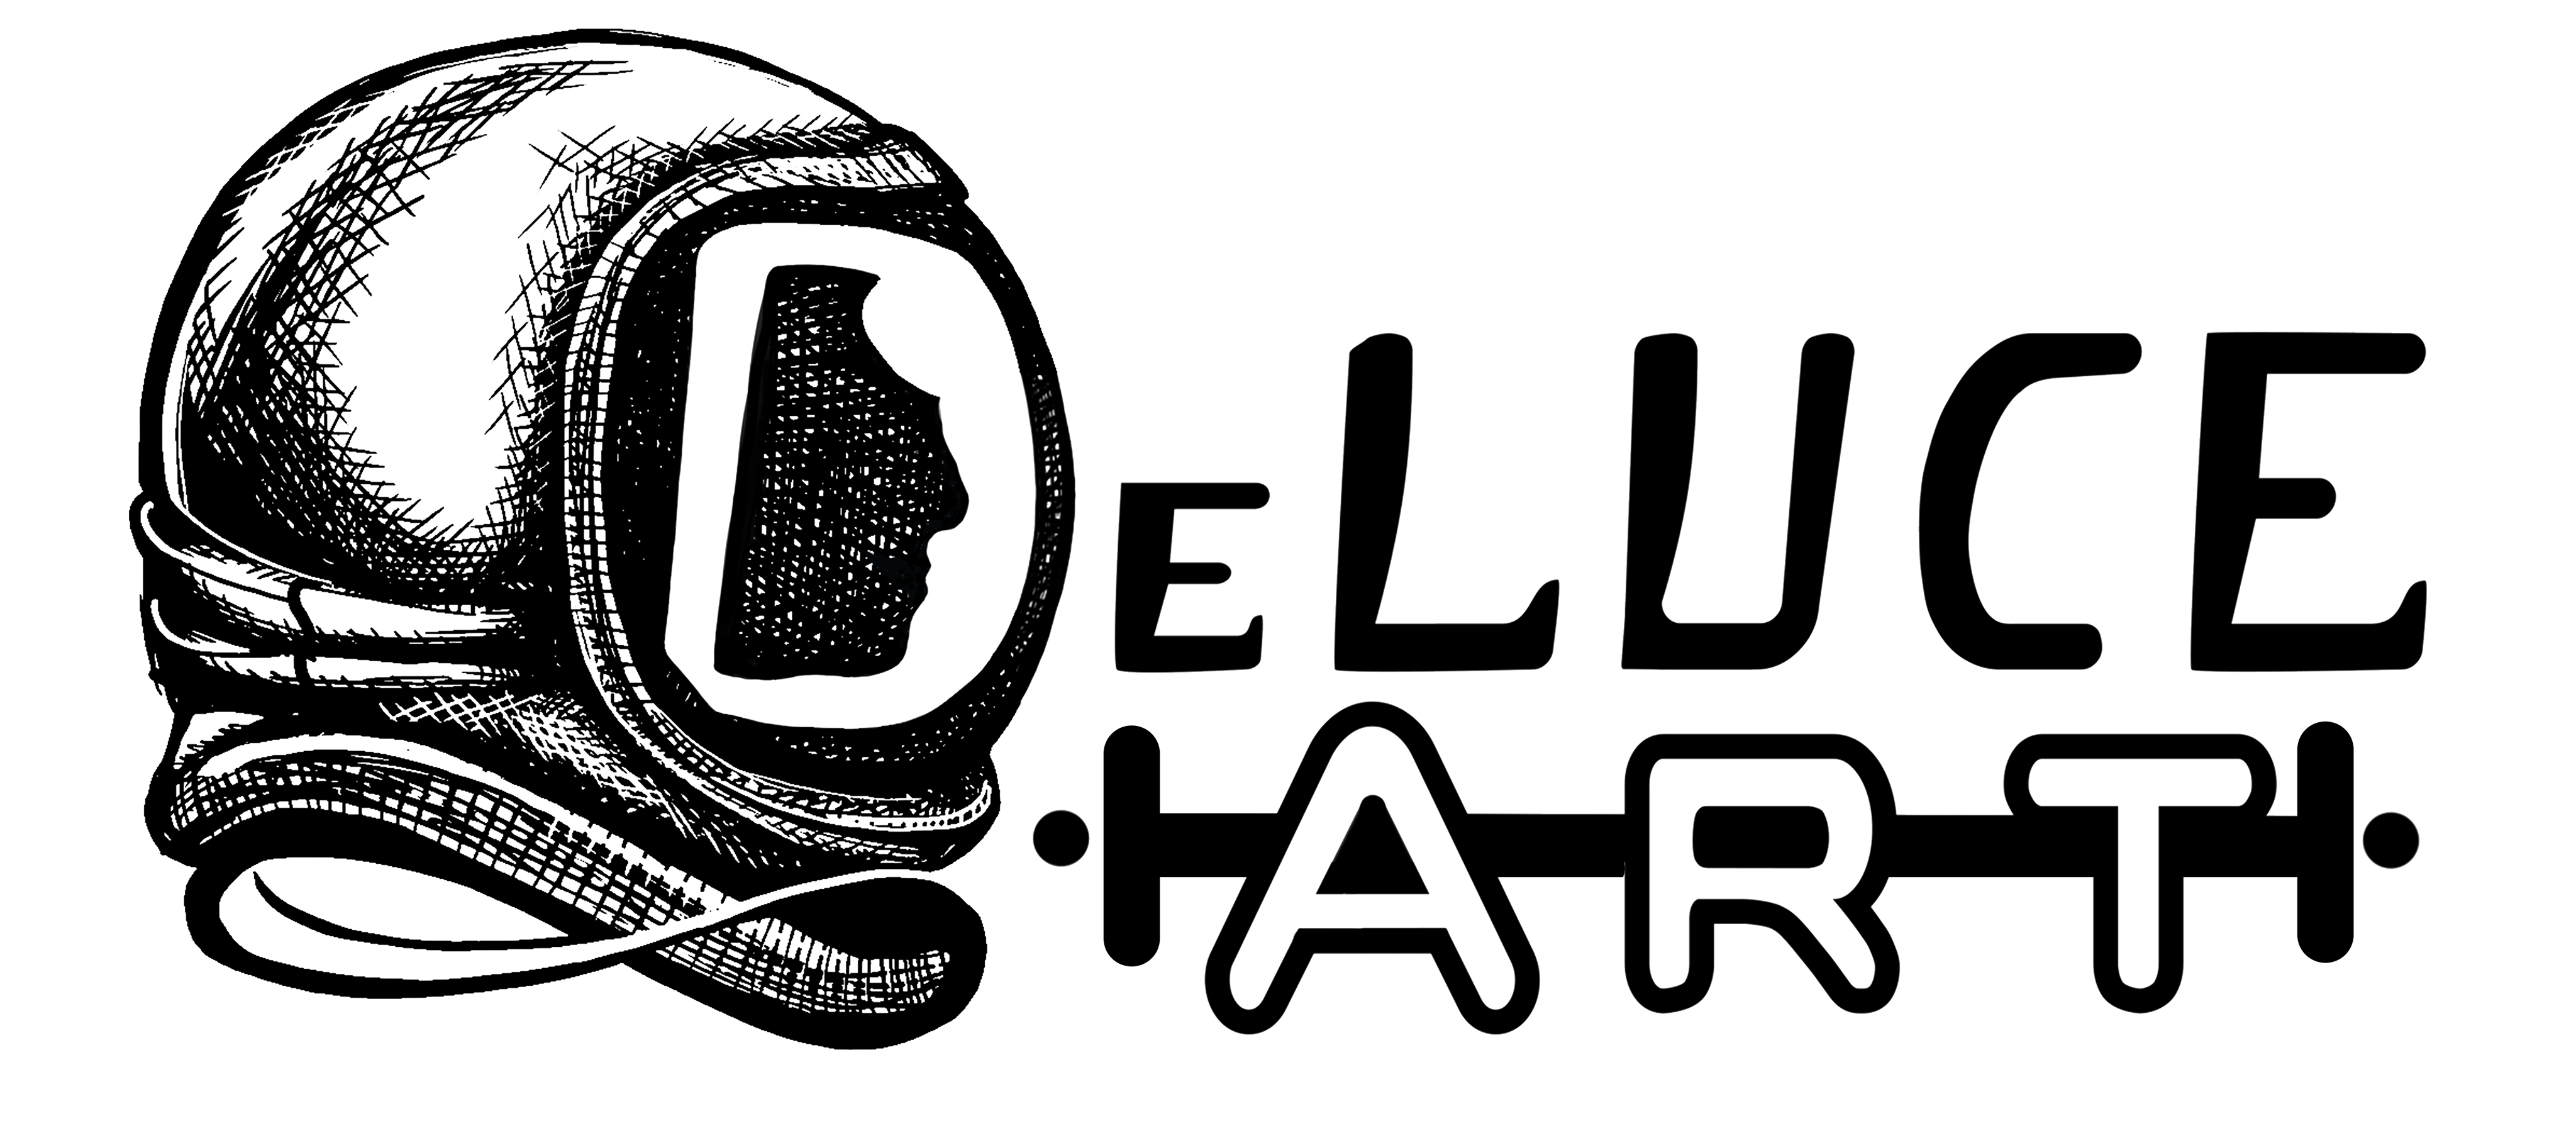 Peter DeLuce Art logo